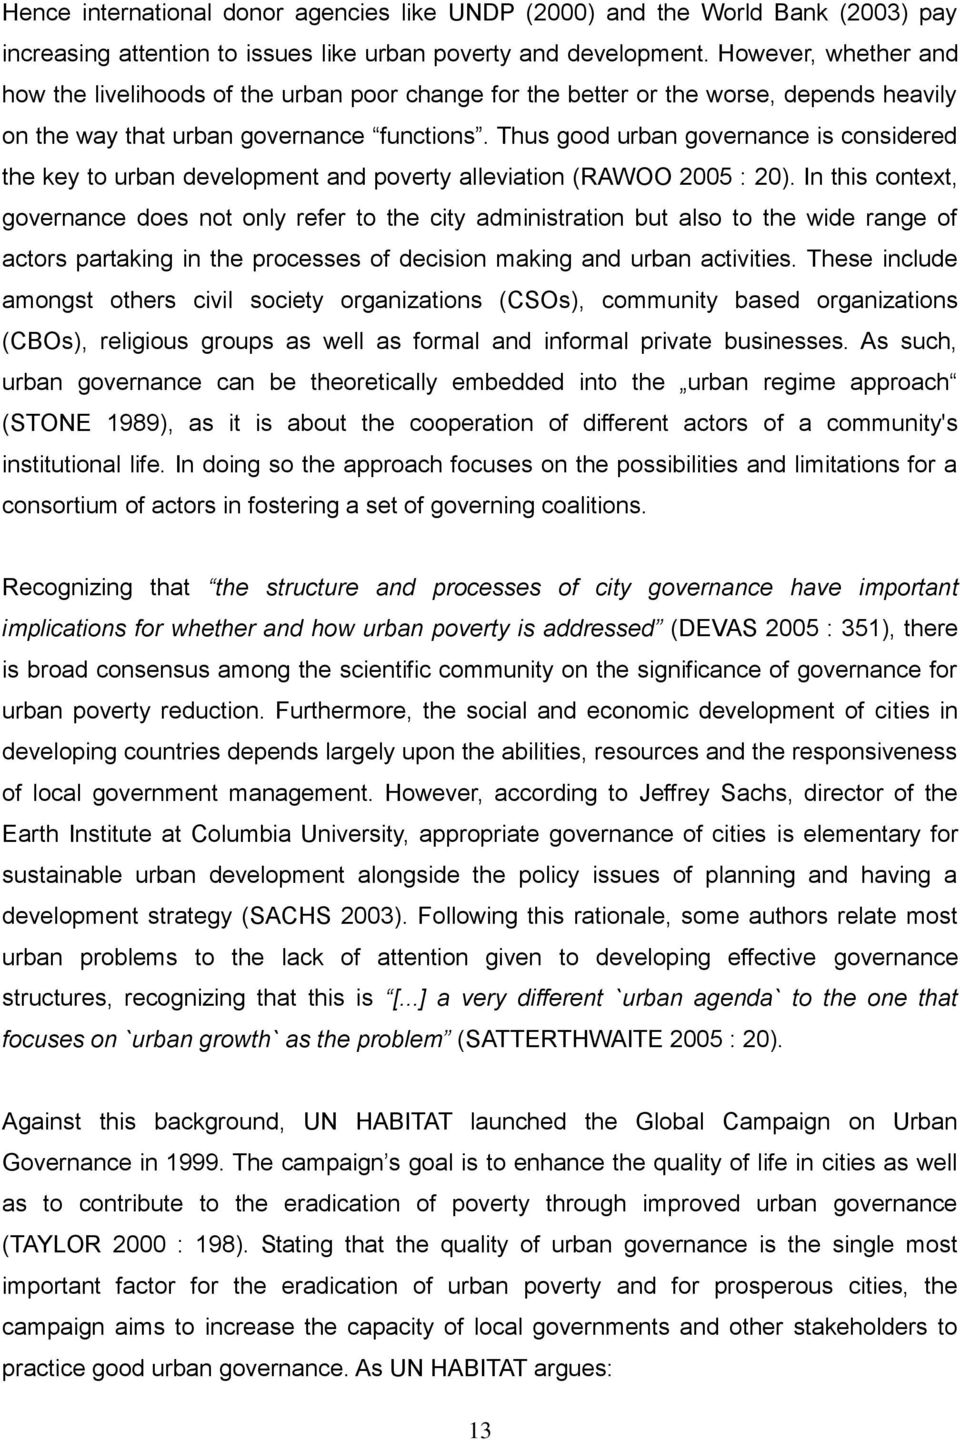 Thus good urban governance is considered the key to urban development and poverty alleviation (RAWOO 2005 : 20).